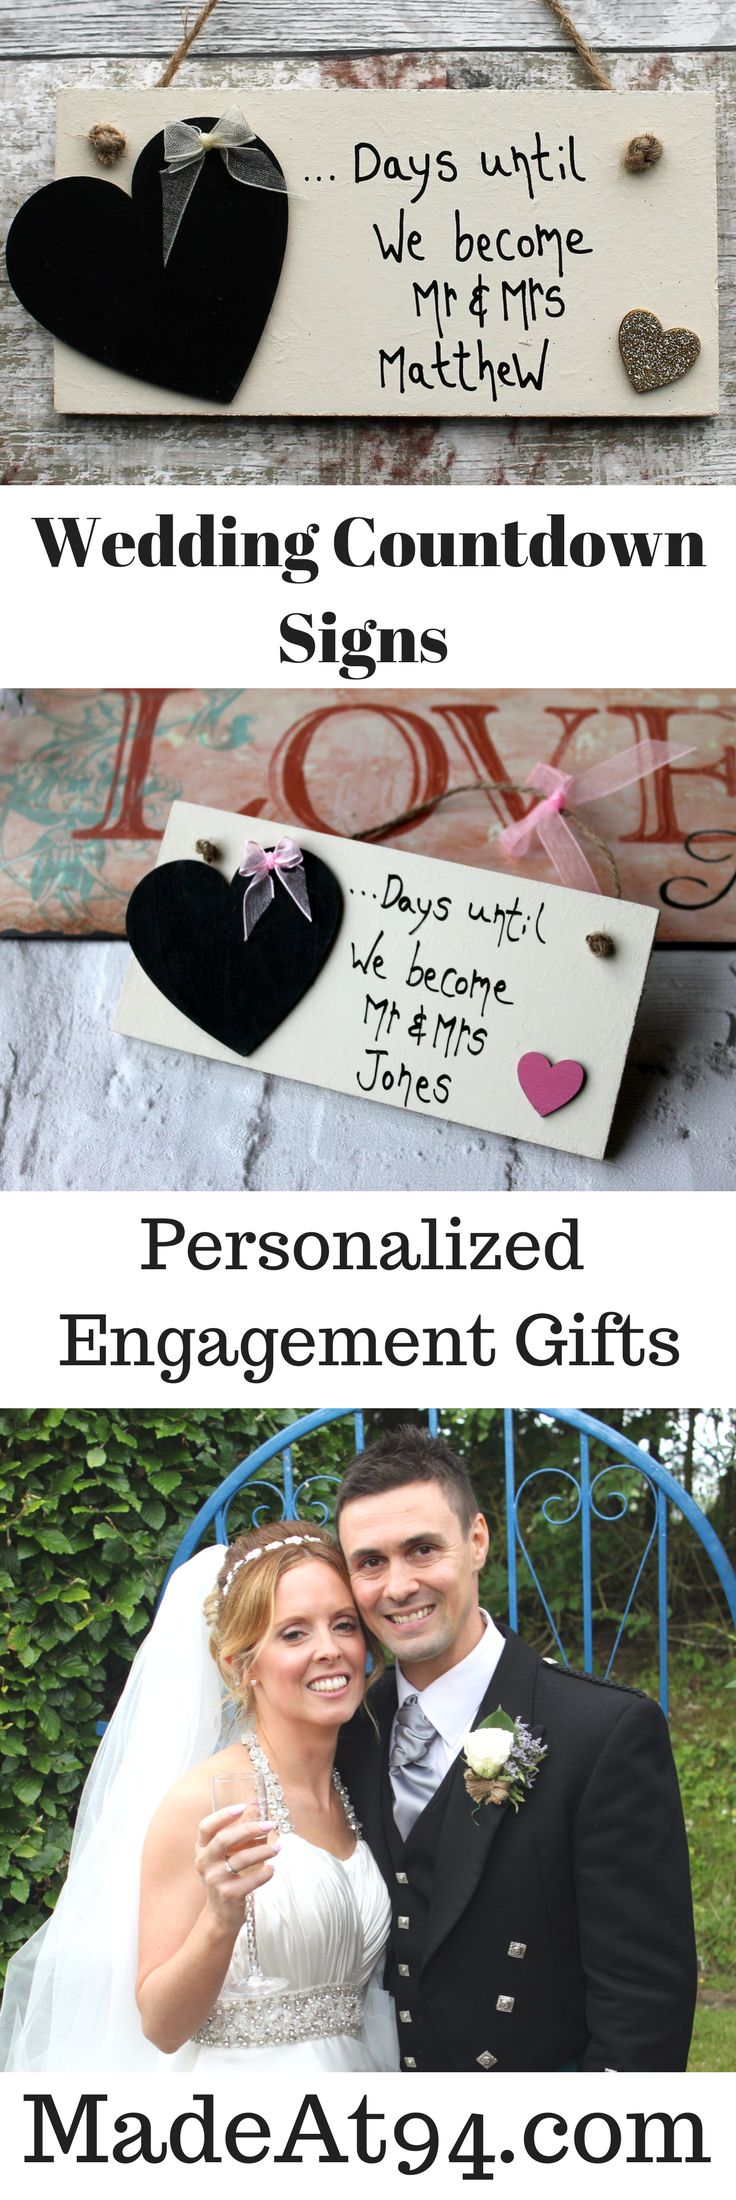 Beautiful engagement gifts for couples, Anniversary Gifts and more, to countdown the days until the big day or to celebrate years together as a married couple.. When two becomes one! Unique Engagement gift ideas the Engaged couple can use as their Wedding Day comes near. Gifts for every stage of the wedding.